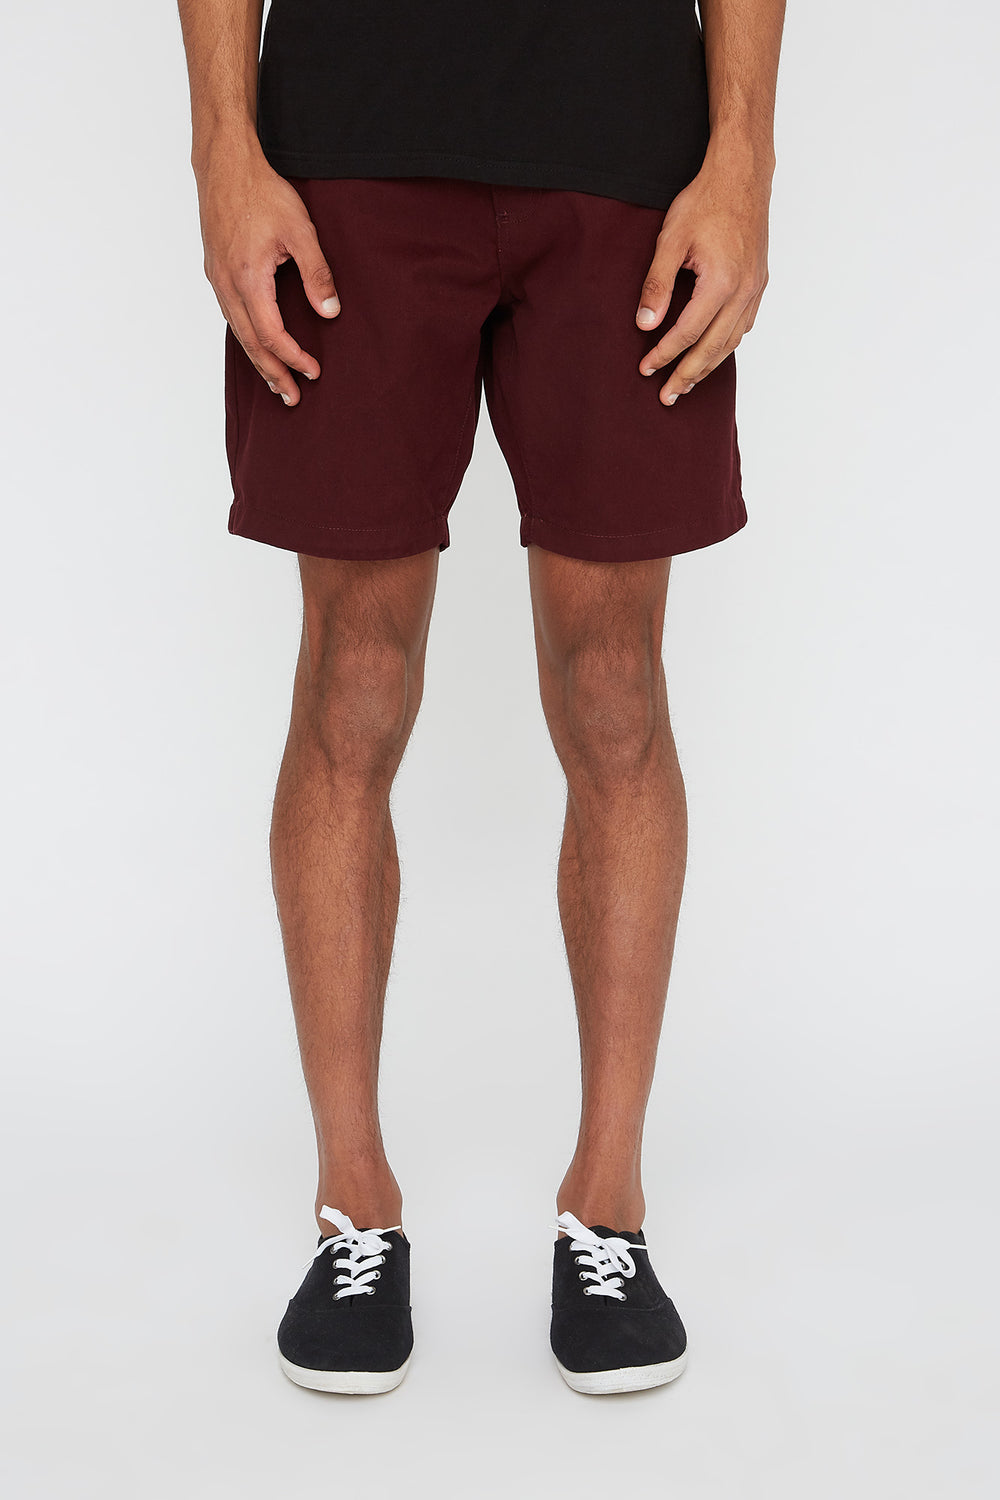 West49 Mens Slim Short Burgundy